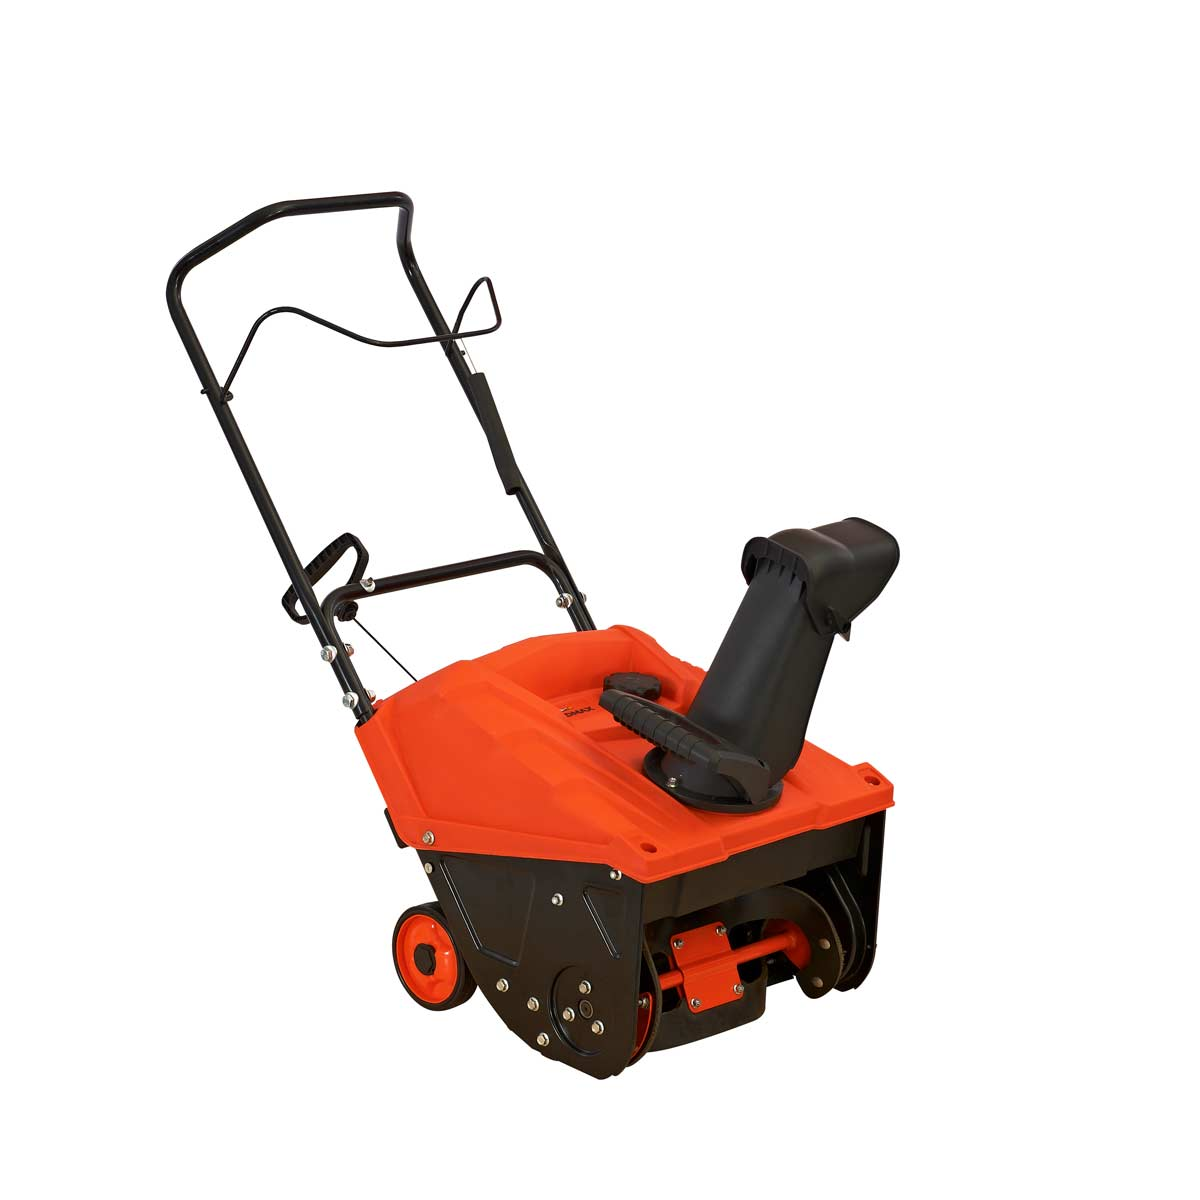 Yardmax Single Stage Snow Thrower